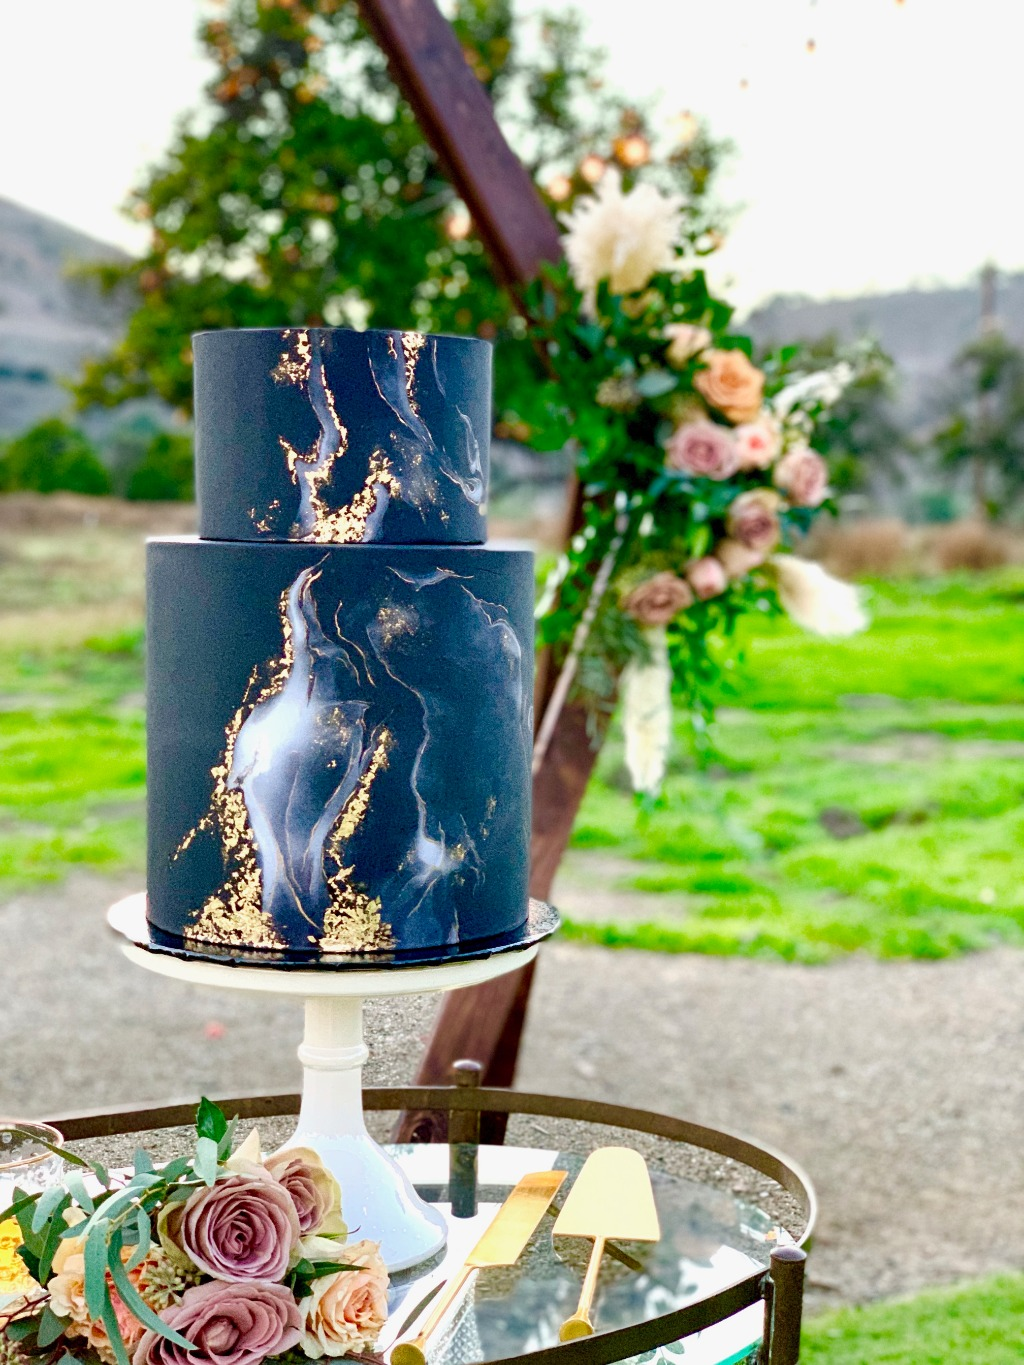 Truly a unique and breathtaking wedding cake design with a masculine touch, yet elegant.